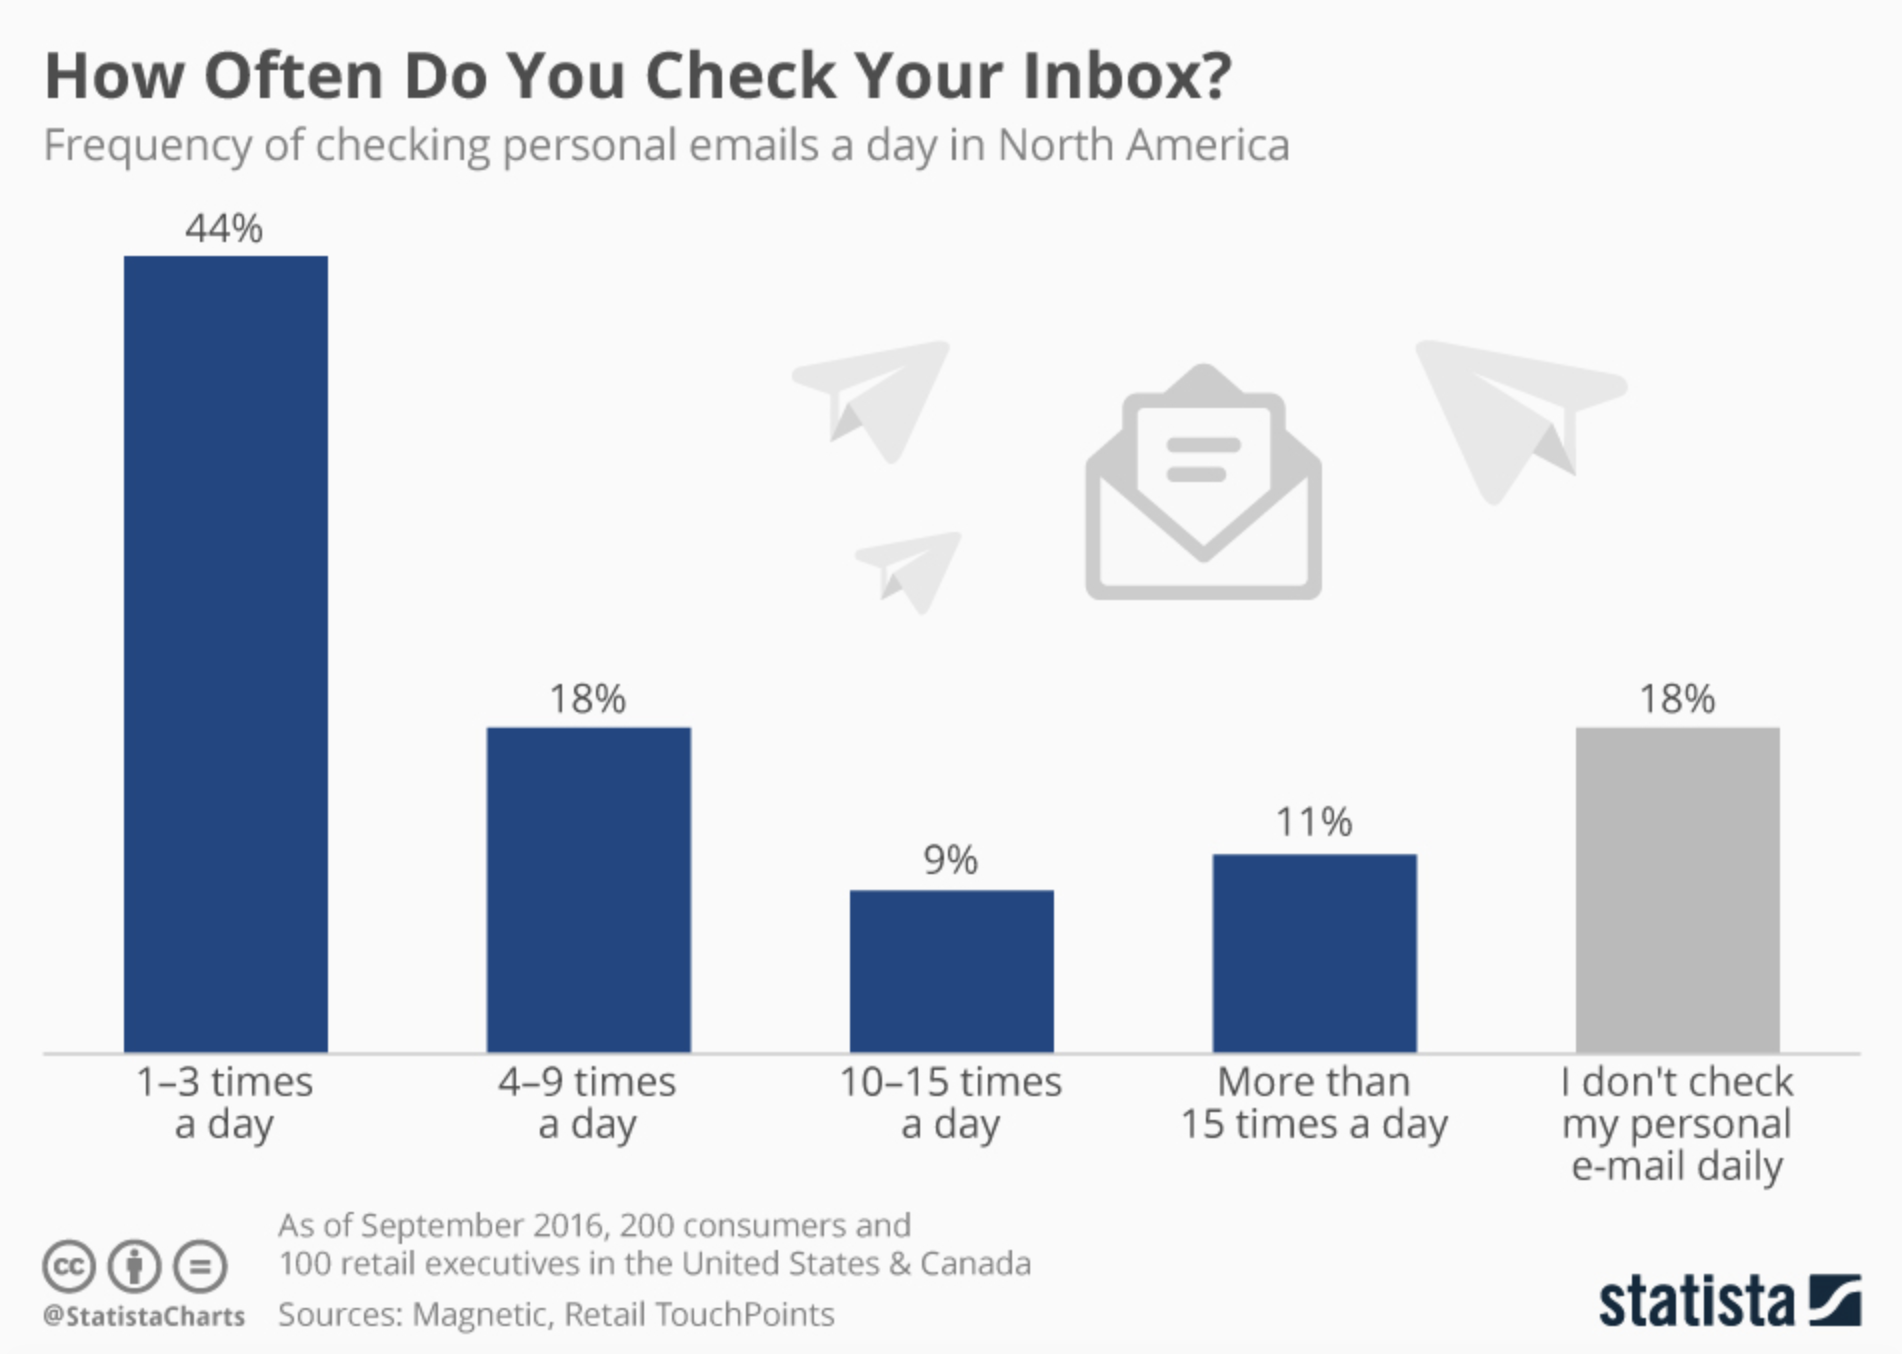 Frequency of checking personal email stats